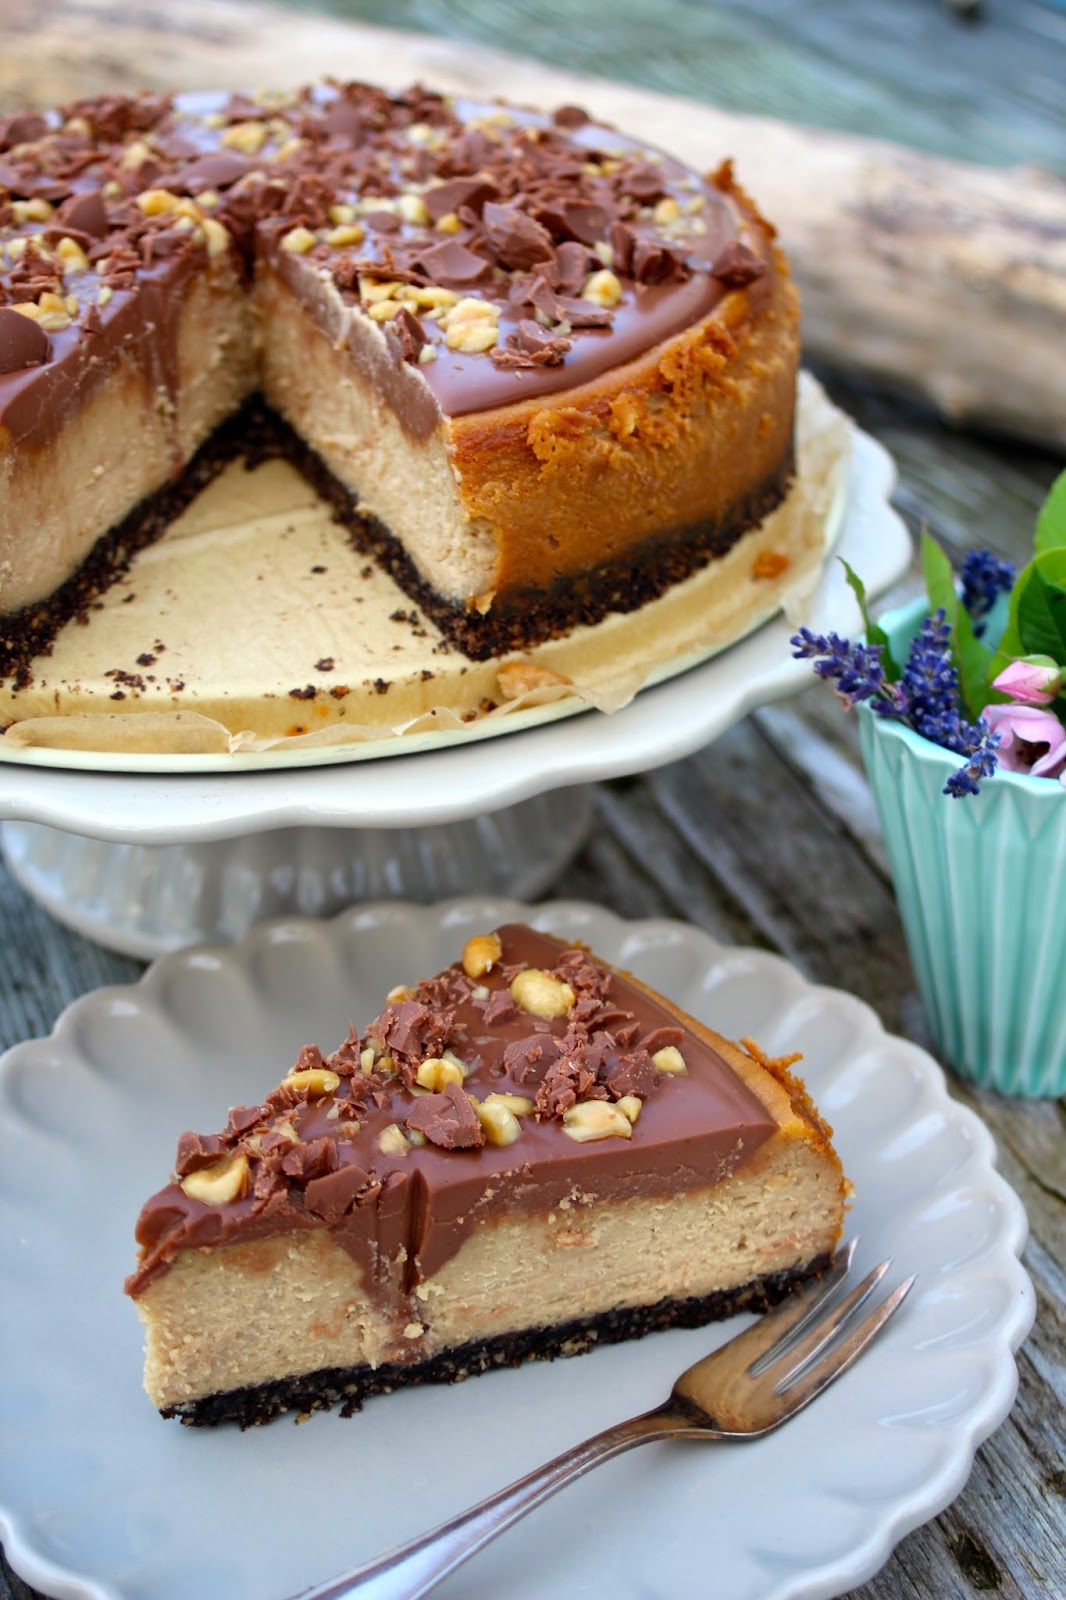 Peanutbutter-Cheesecake